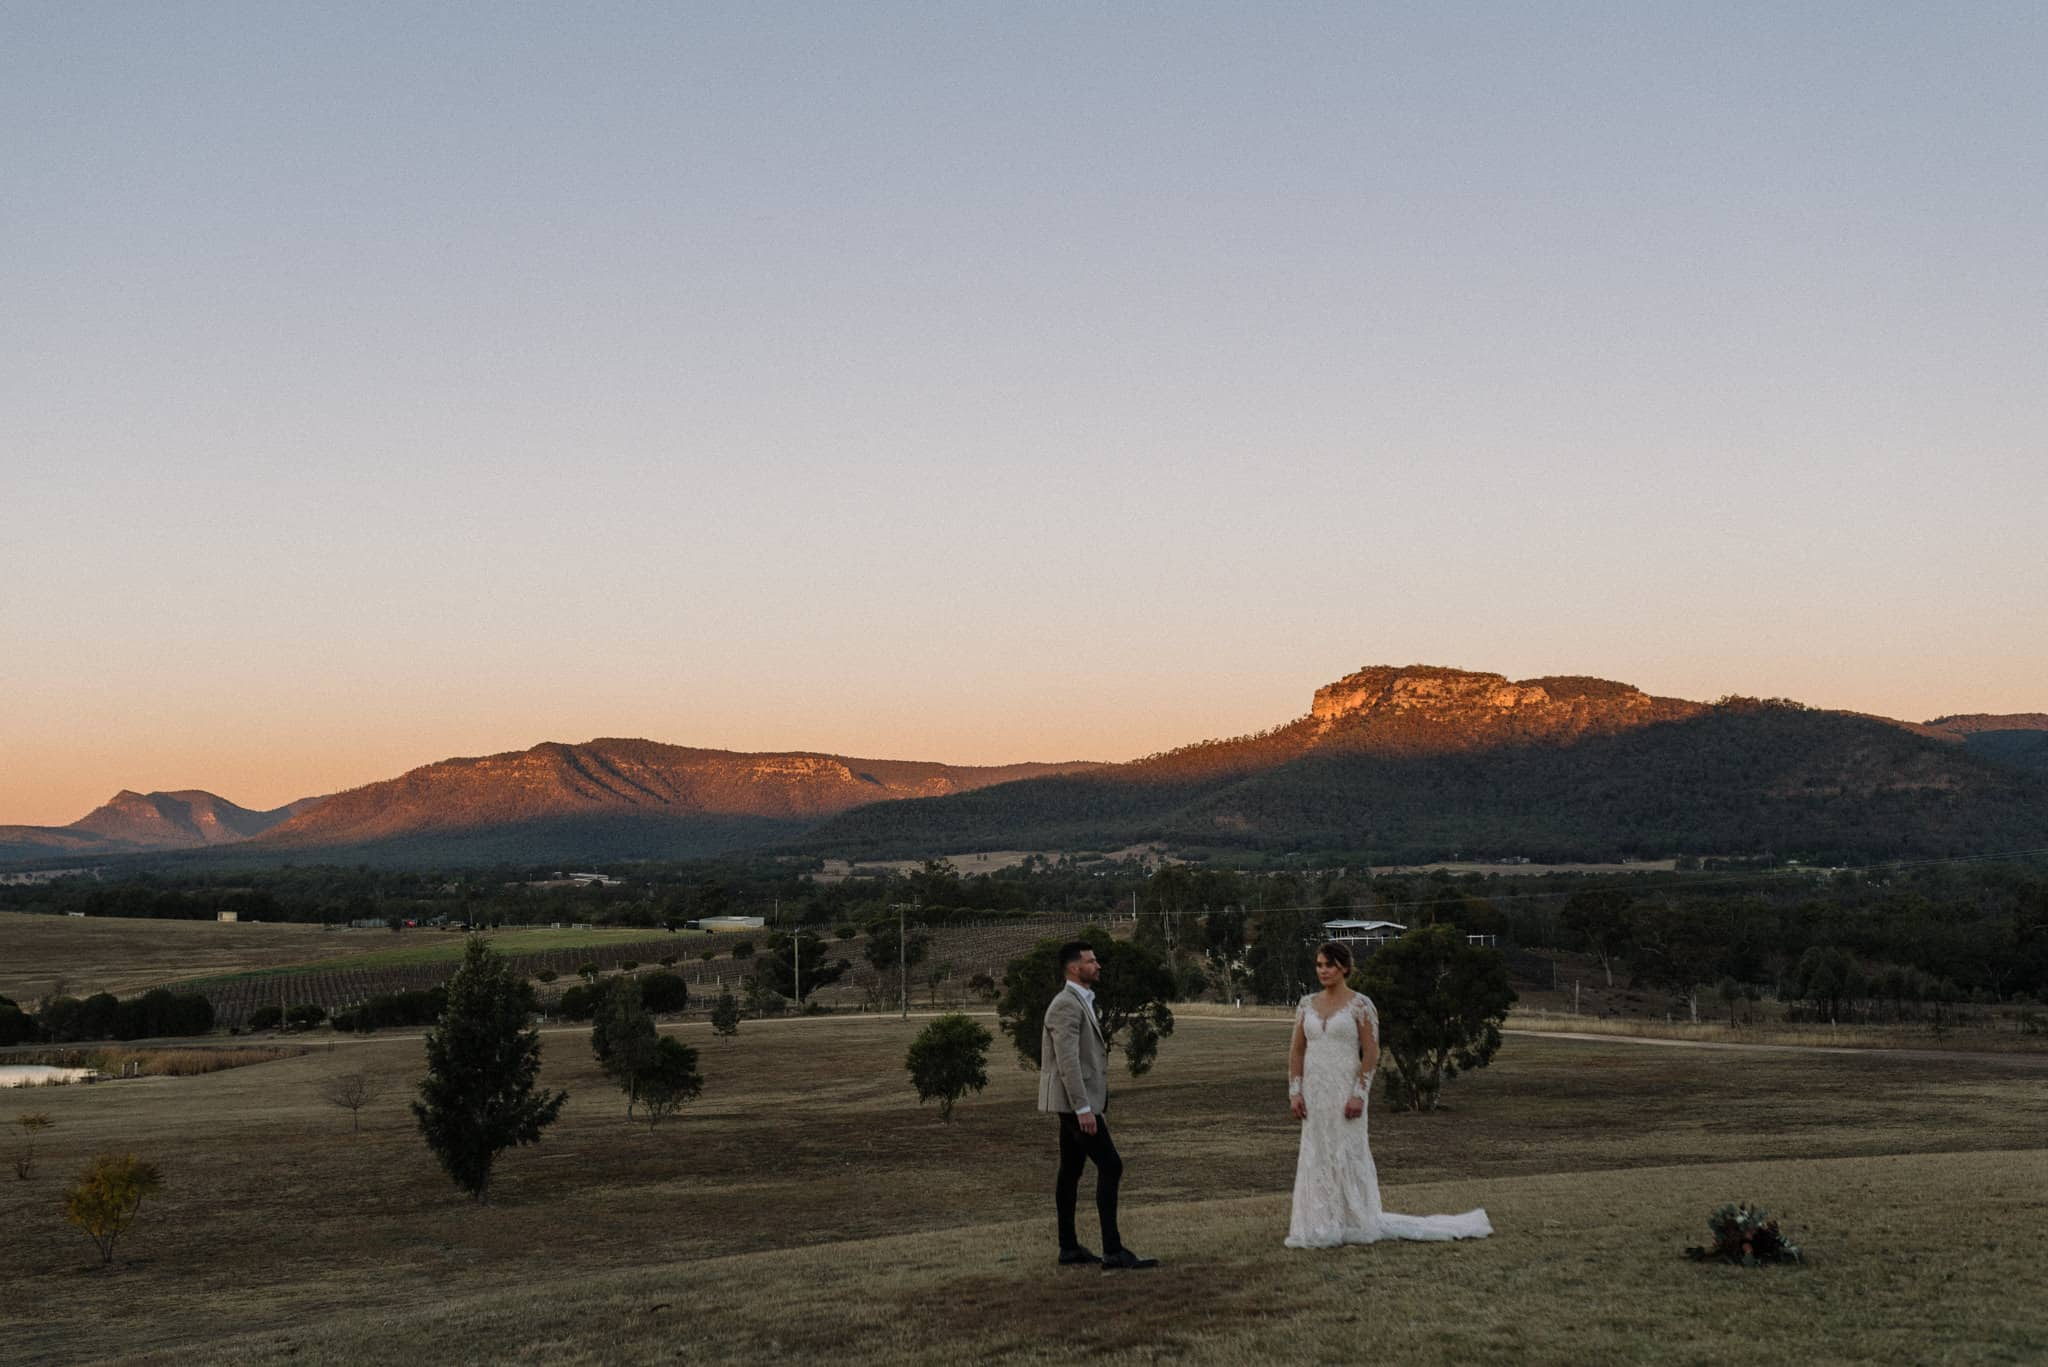 eloping vs wedding, hunter valley is one of the best places to elope, especially in winter